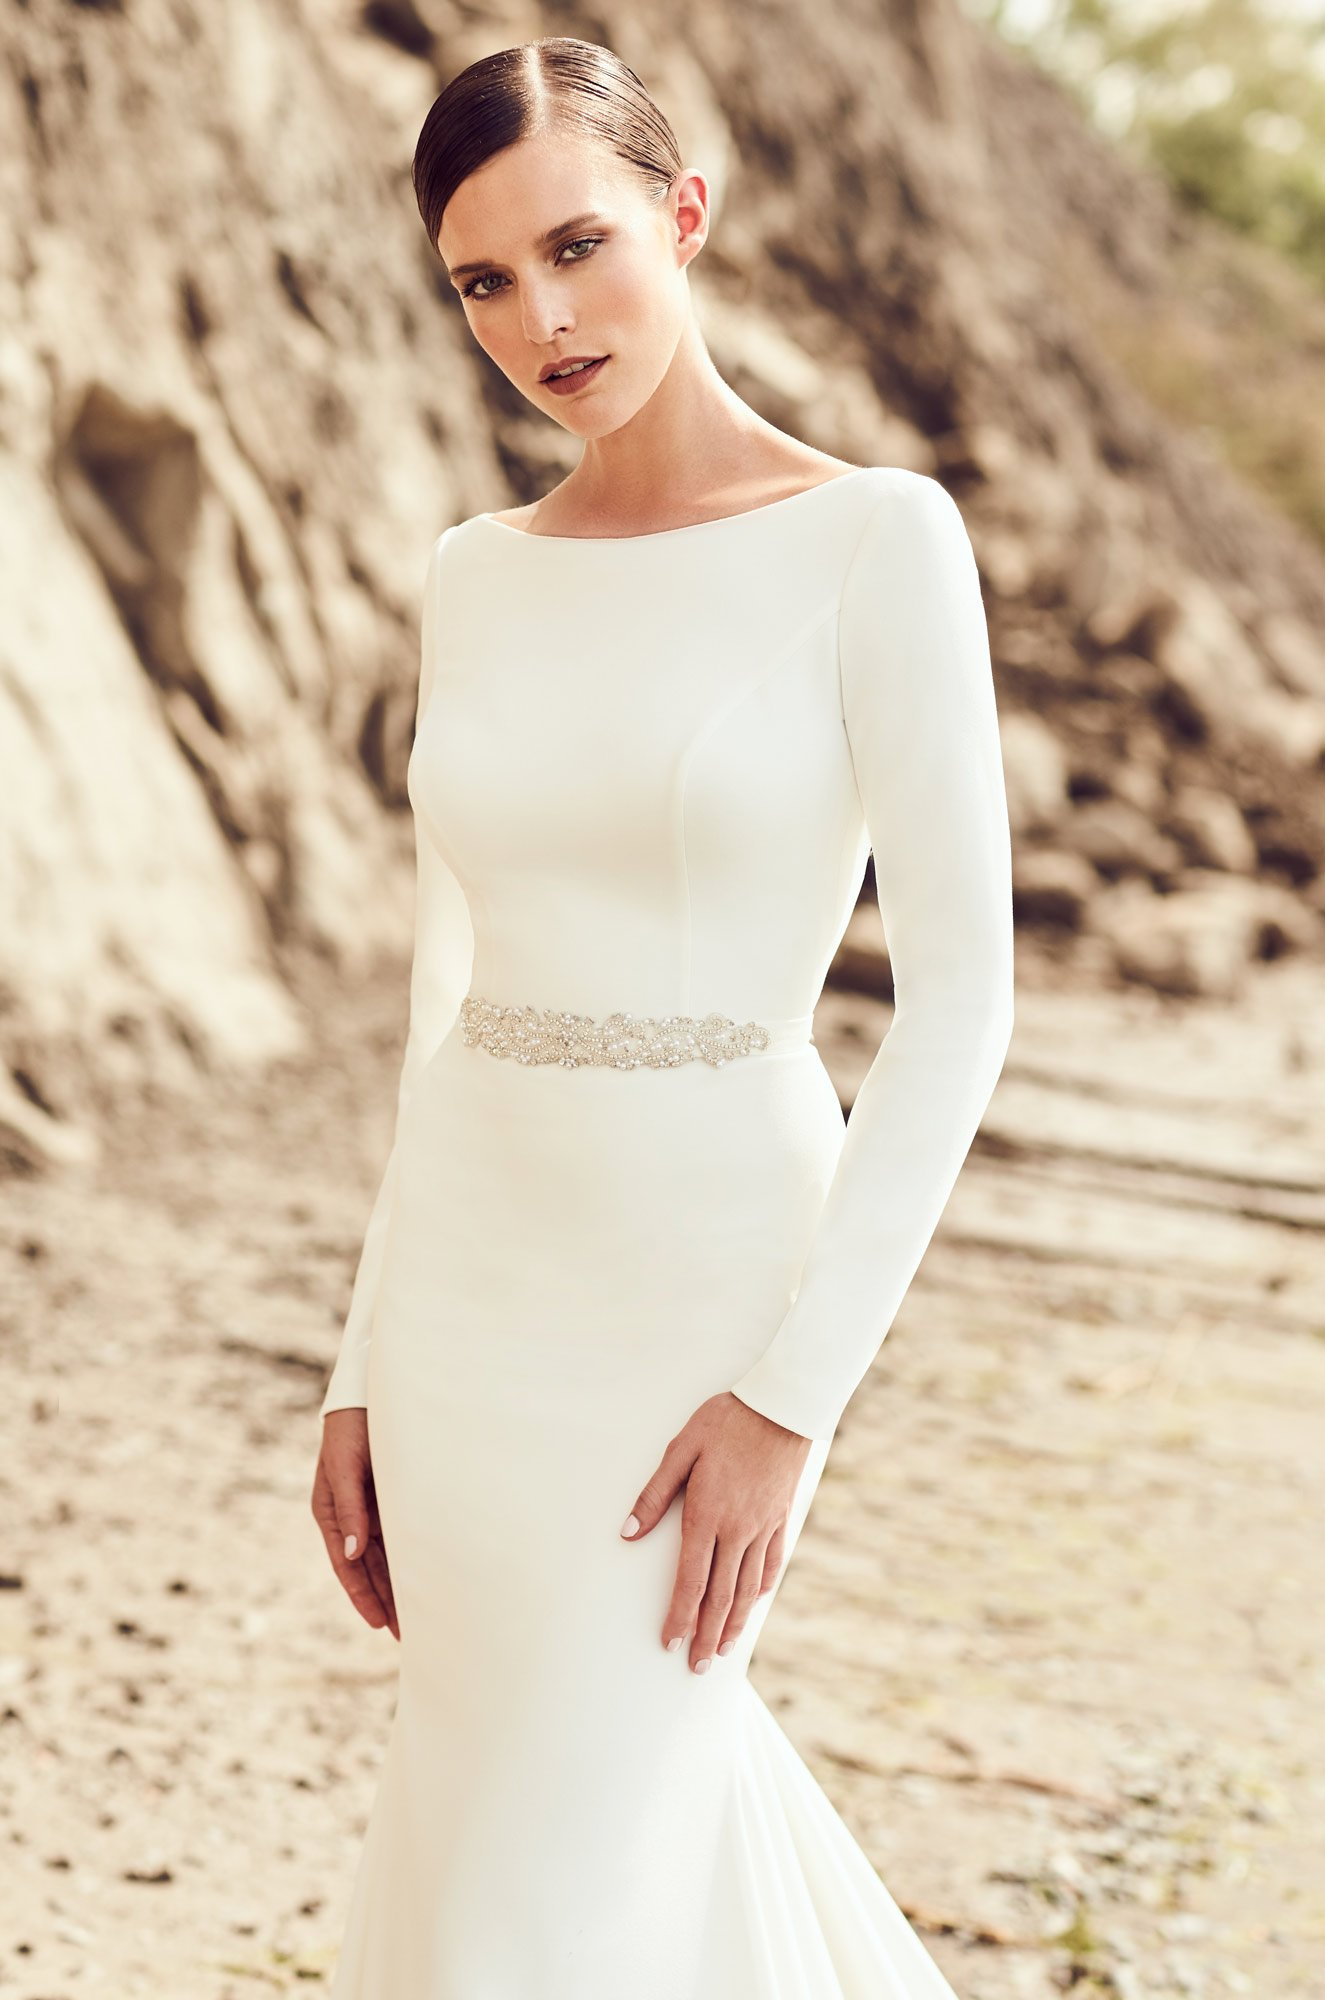 High Neckline Wedding Dress - Style #2105 | Mikaella Bridal